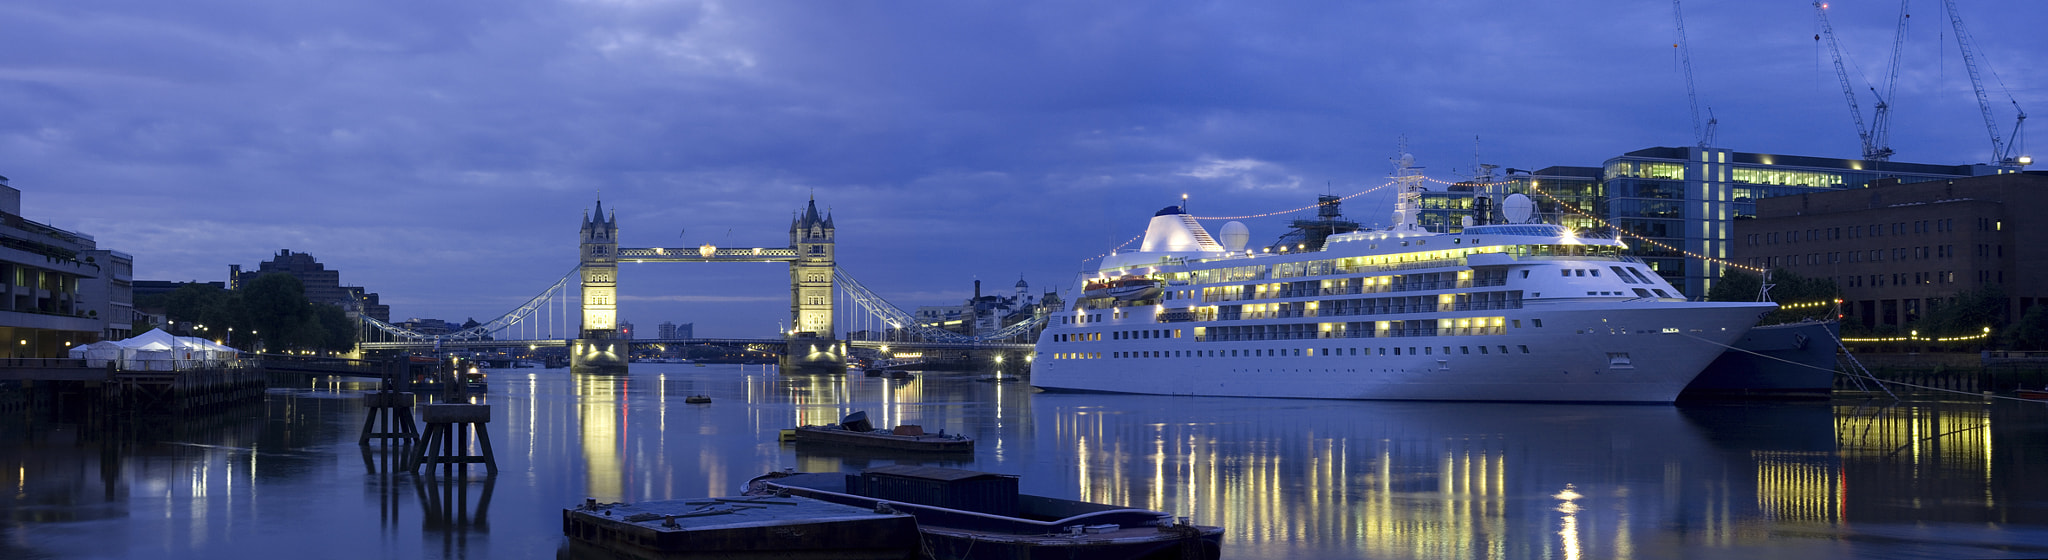 Photograph Tower Bridge at dawn panoramic  by Justin Sneddon on 500px